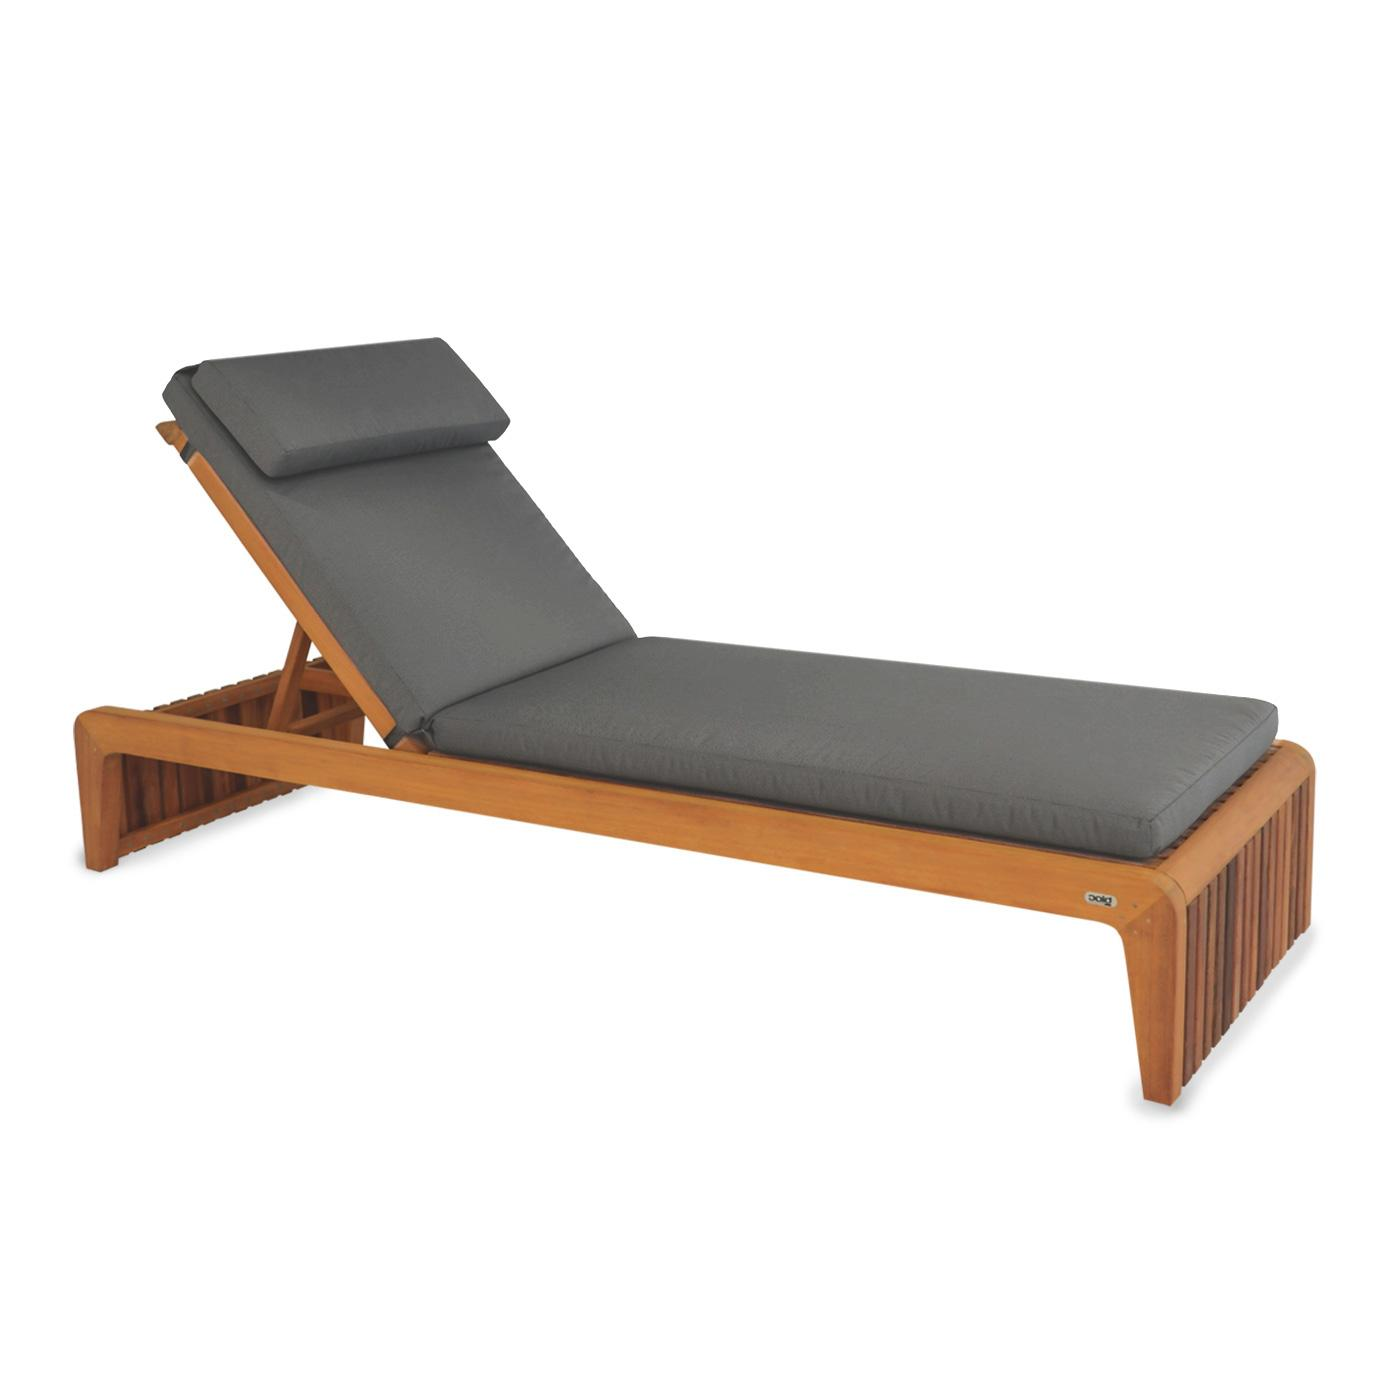 serengeti-lounger-charcoal